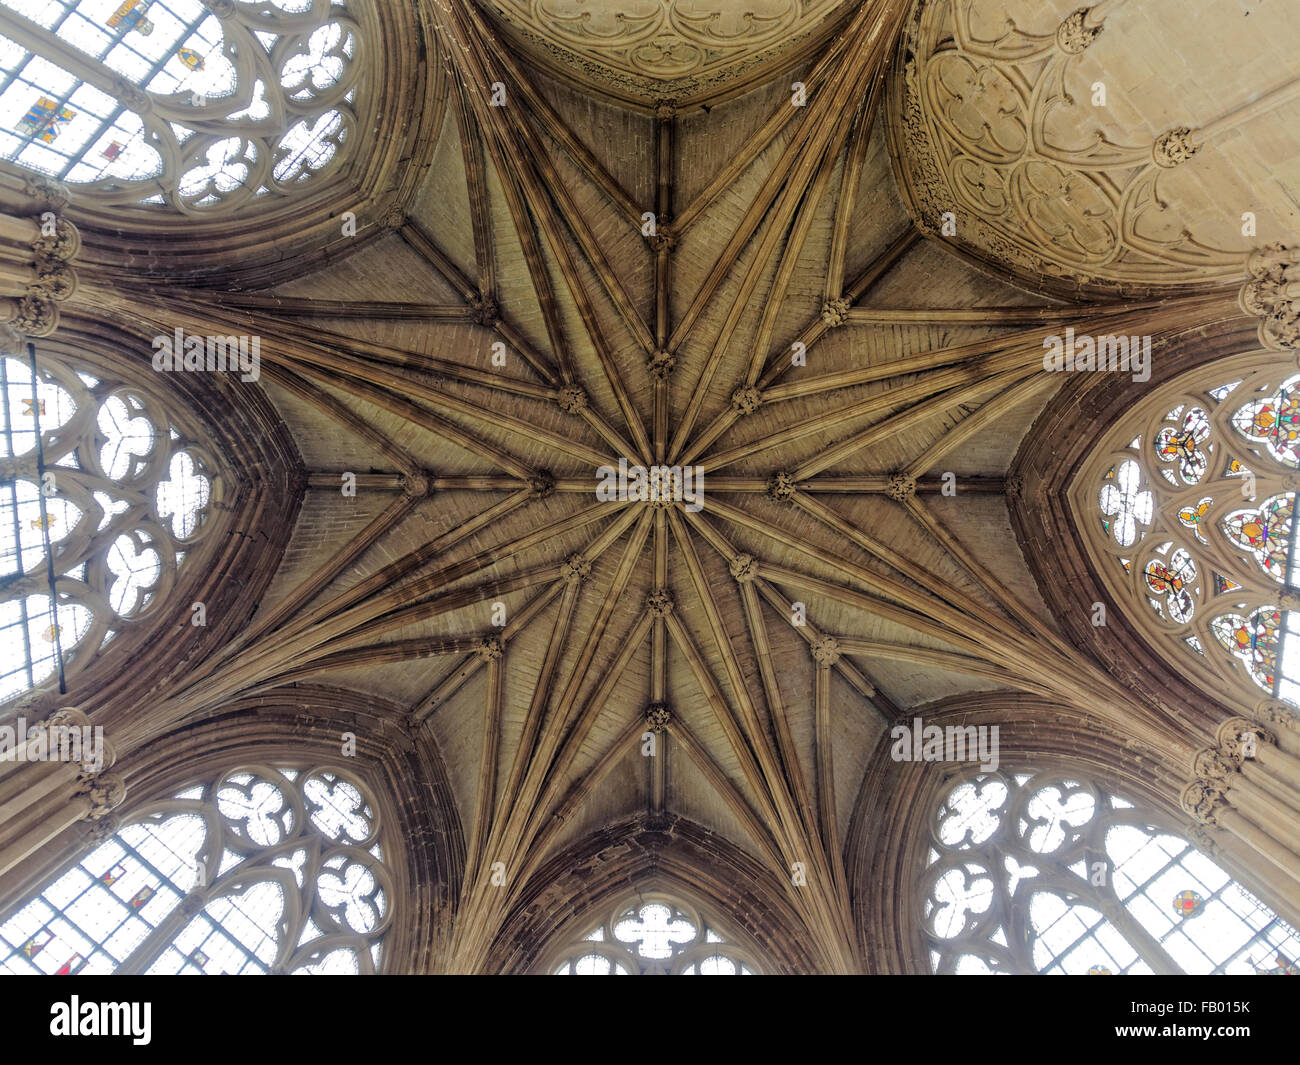 The vaulted Chapter House ceiling at Southwell Minster, Nottinghamshire, England, United Kingdom - Stock Image